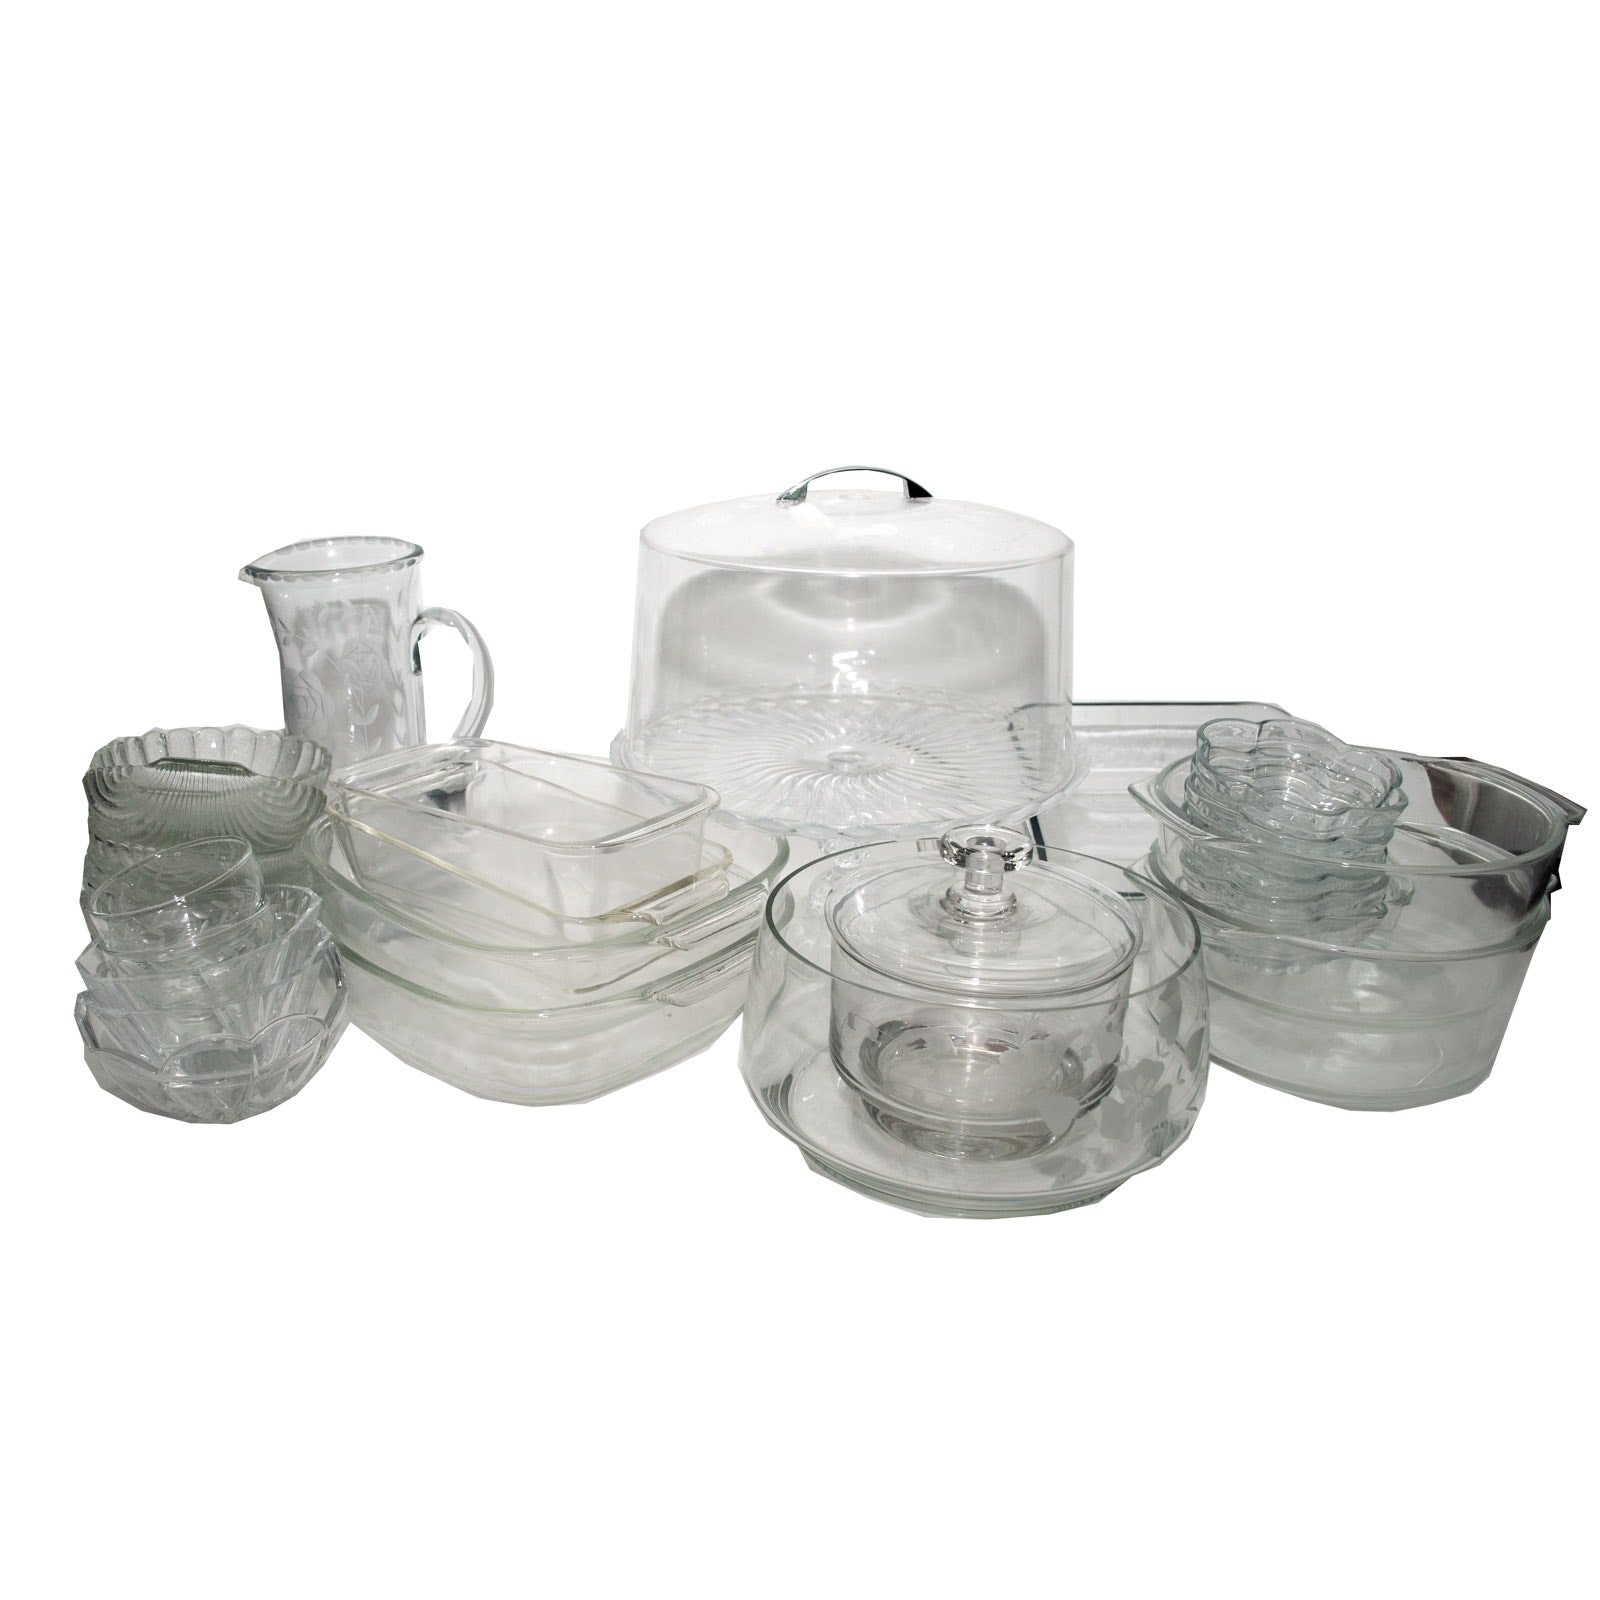 Glass Baking Dishes and Tableware Including Fire King